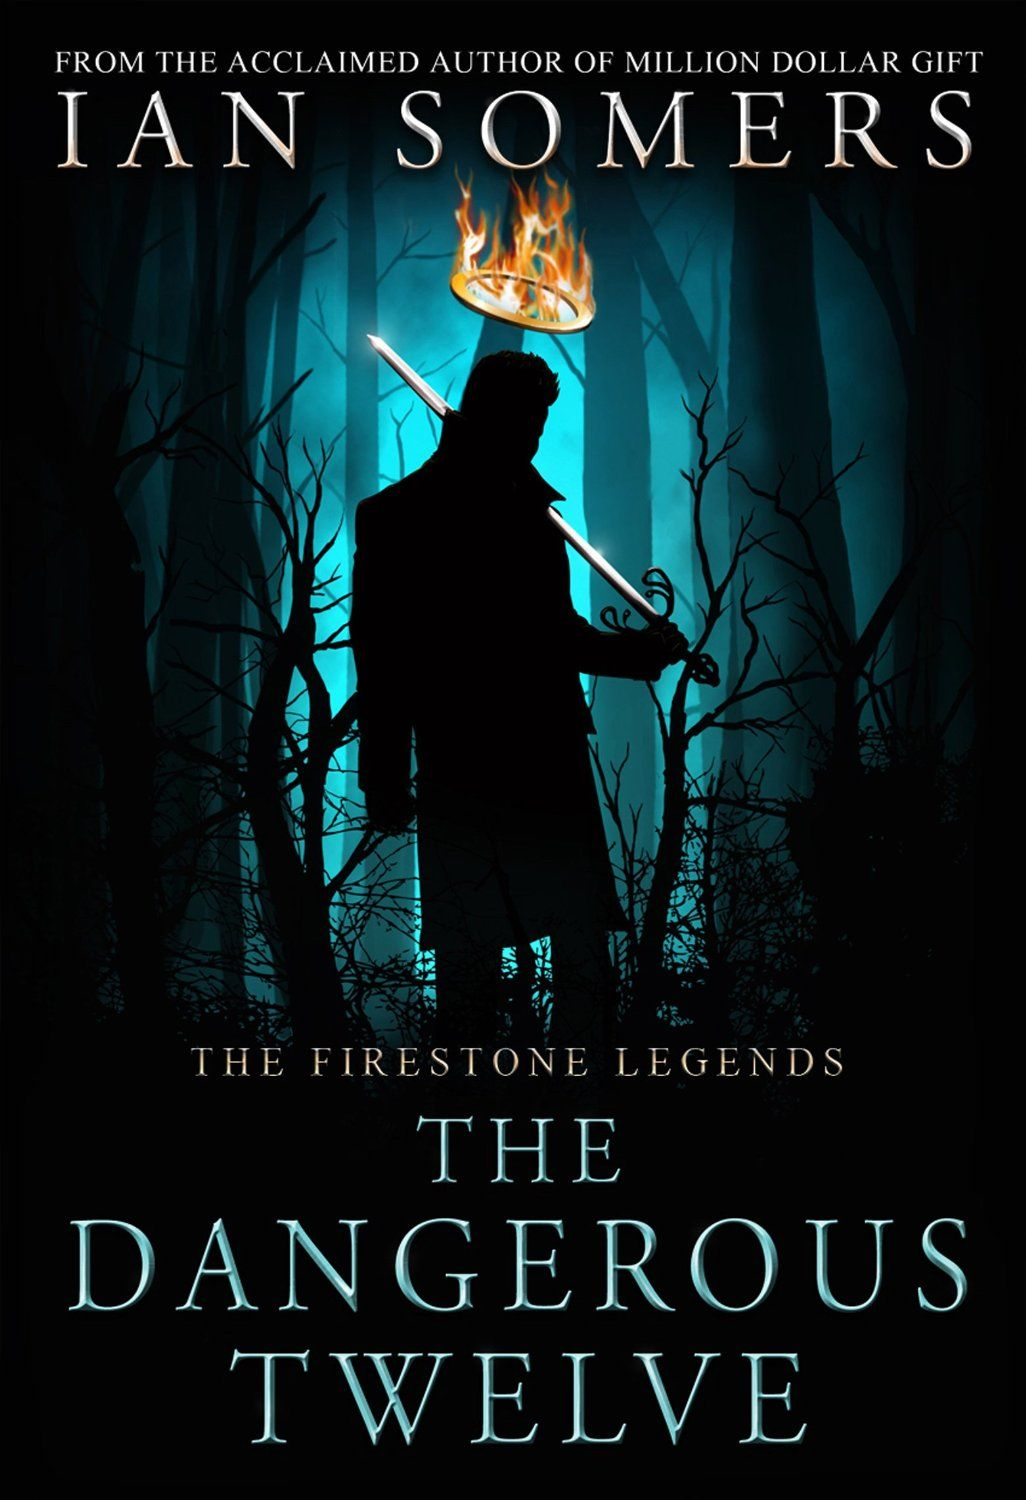 The Dangerous Twelve The Firestone Legends, by Ian Somers ($0.99)